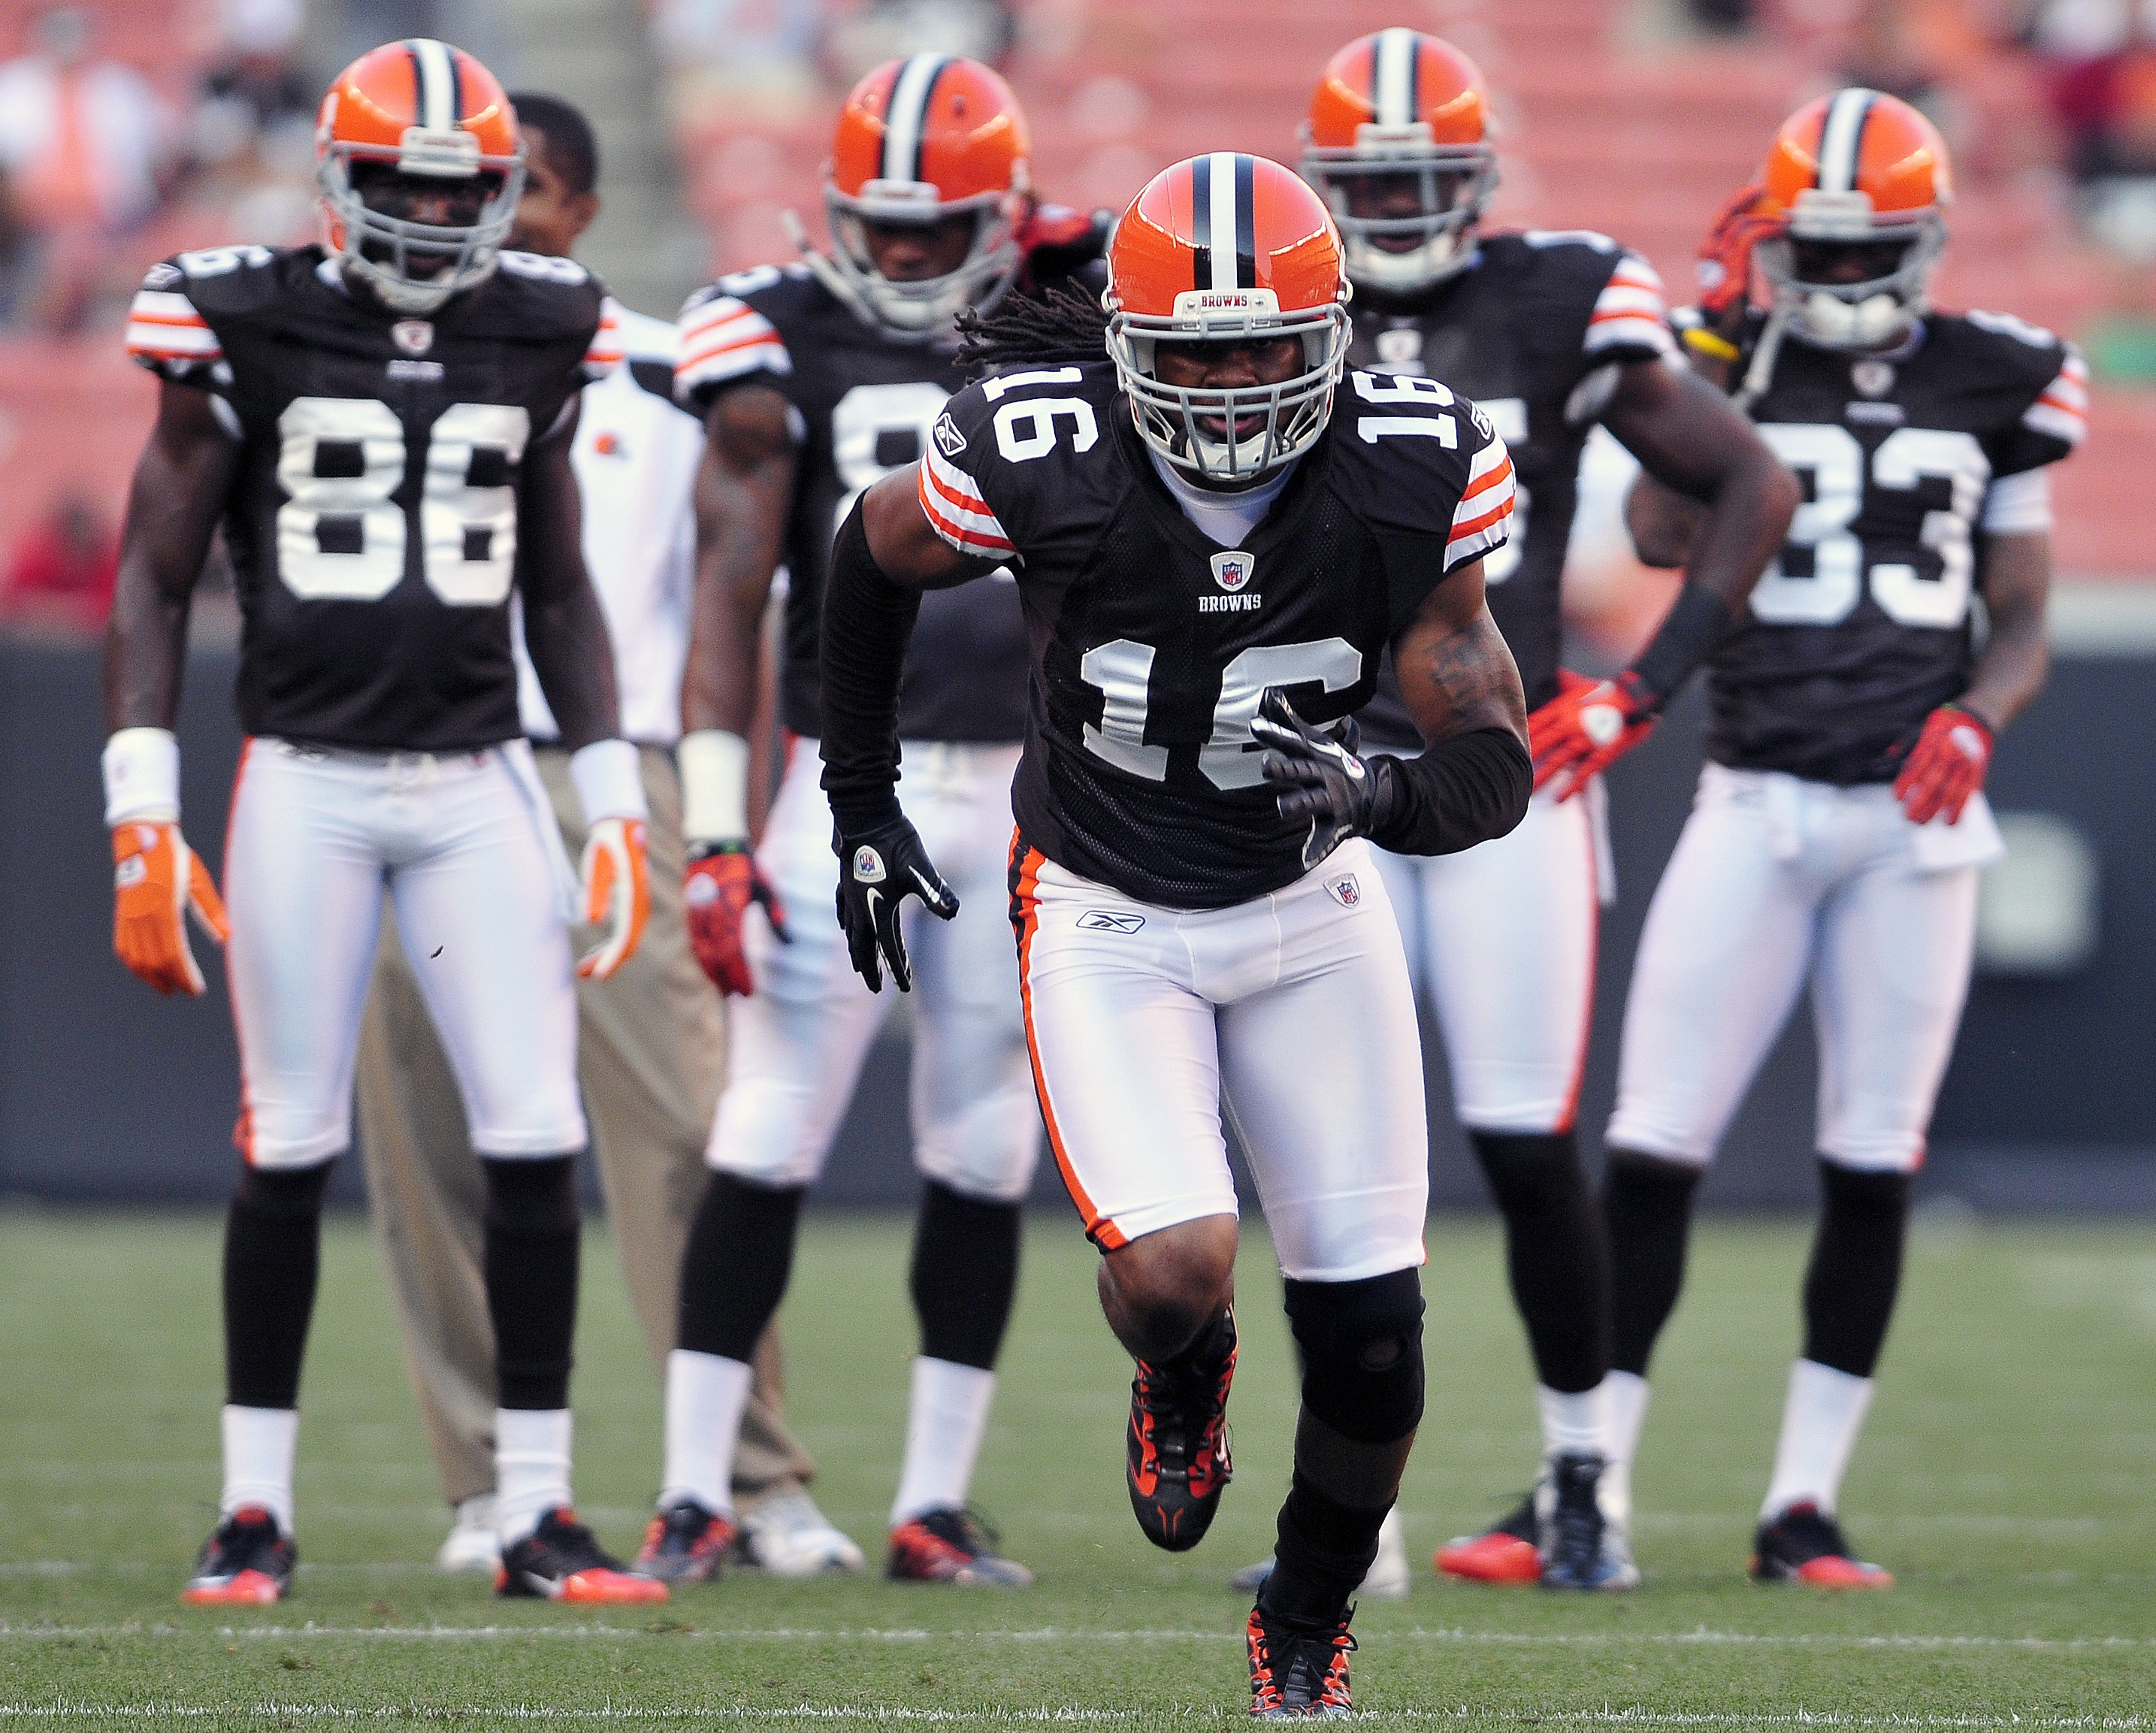 Brown Jerseys Return For Browns Home Games In 2012 – CBS Cleveland